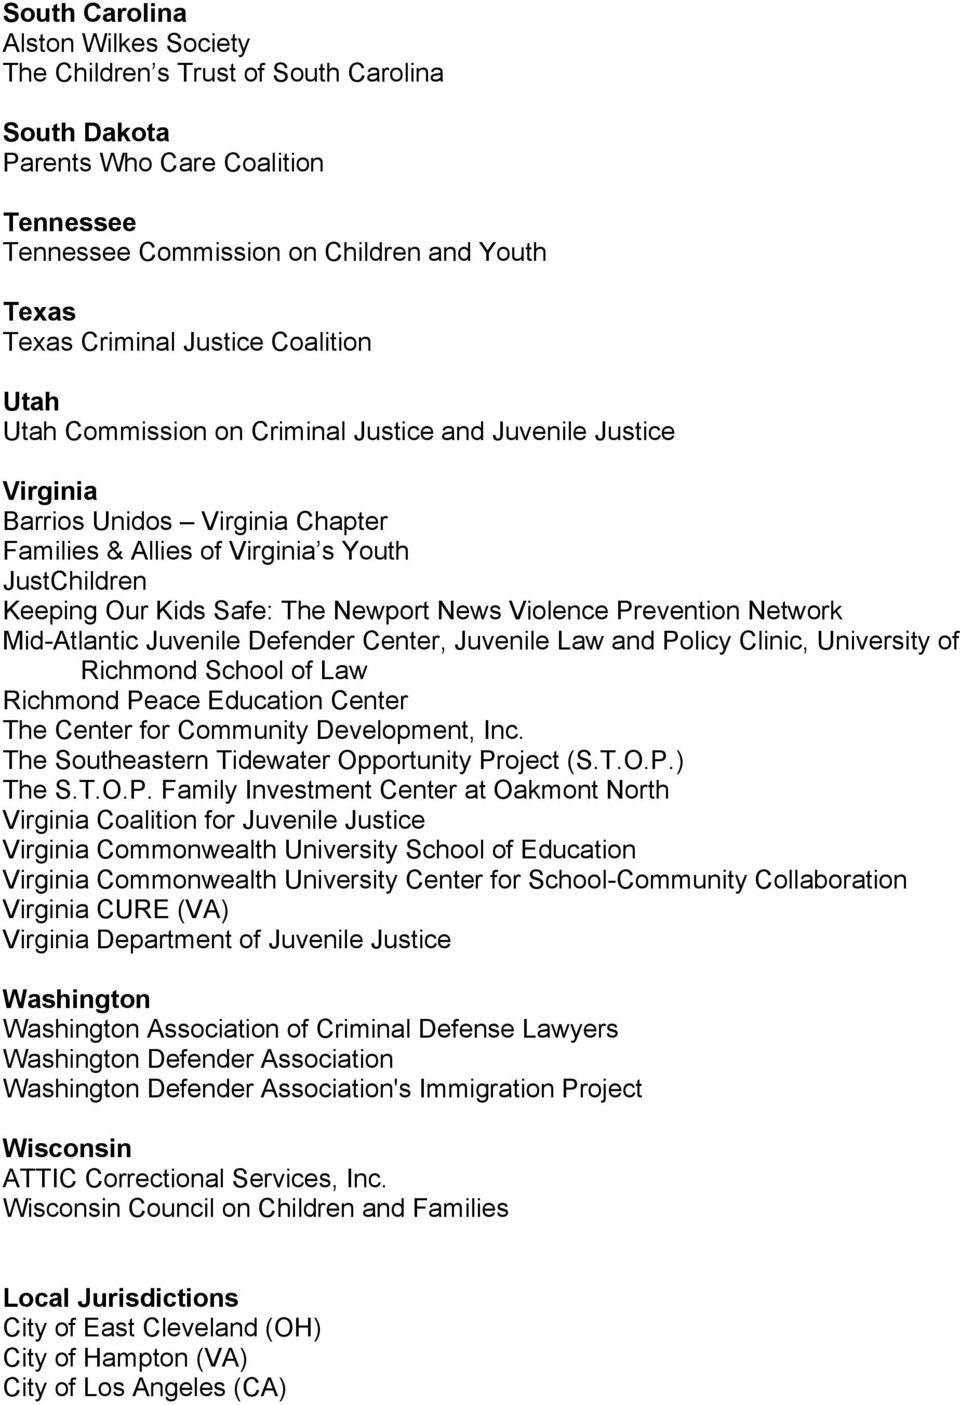 News Violence Prevention Network Mid-Atlantic Juvenile Defender Center, Juvenile Law and Policy Clinic, University of Richmond School of Law Richmond Peace Education Center The Center for Community